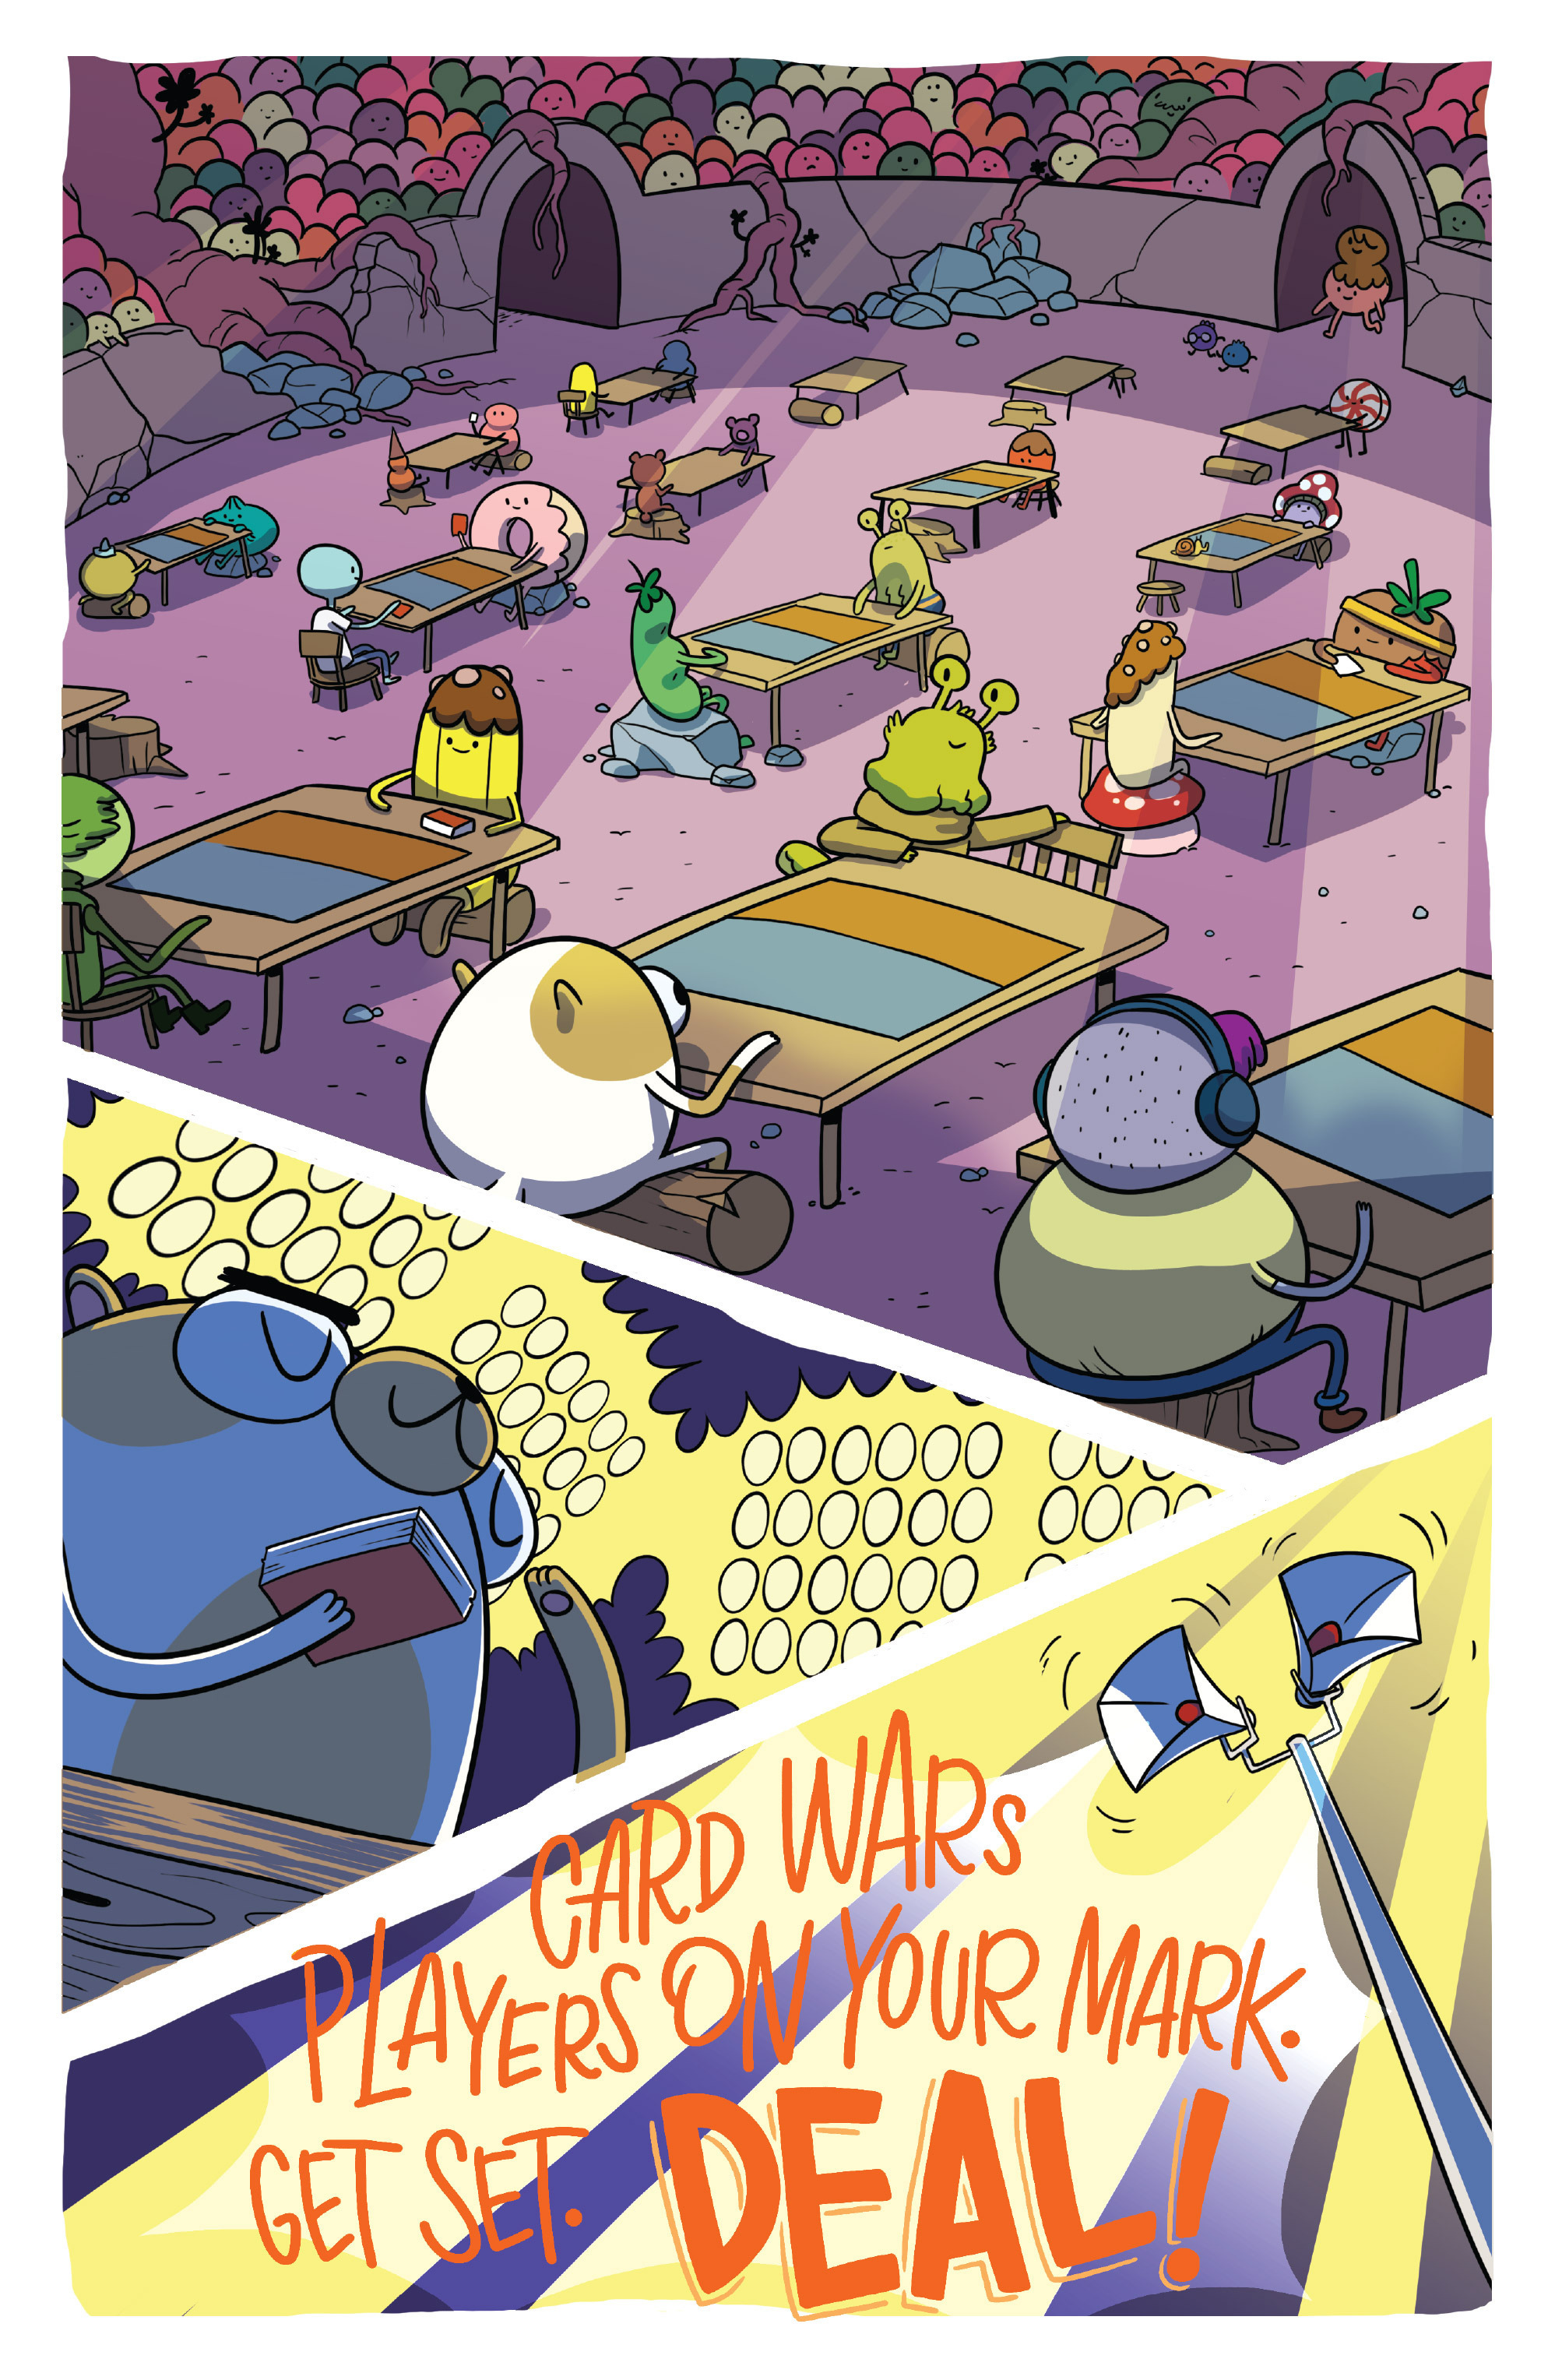 Read online Adventure Time Fionna and Cake Card Wars comic -  Issue #4 - 16